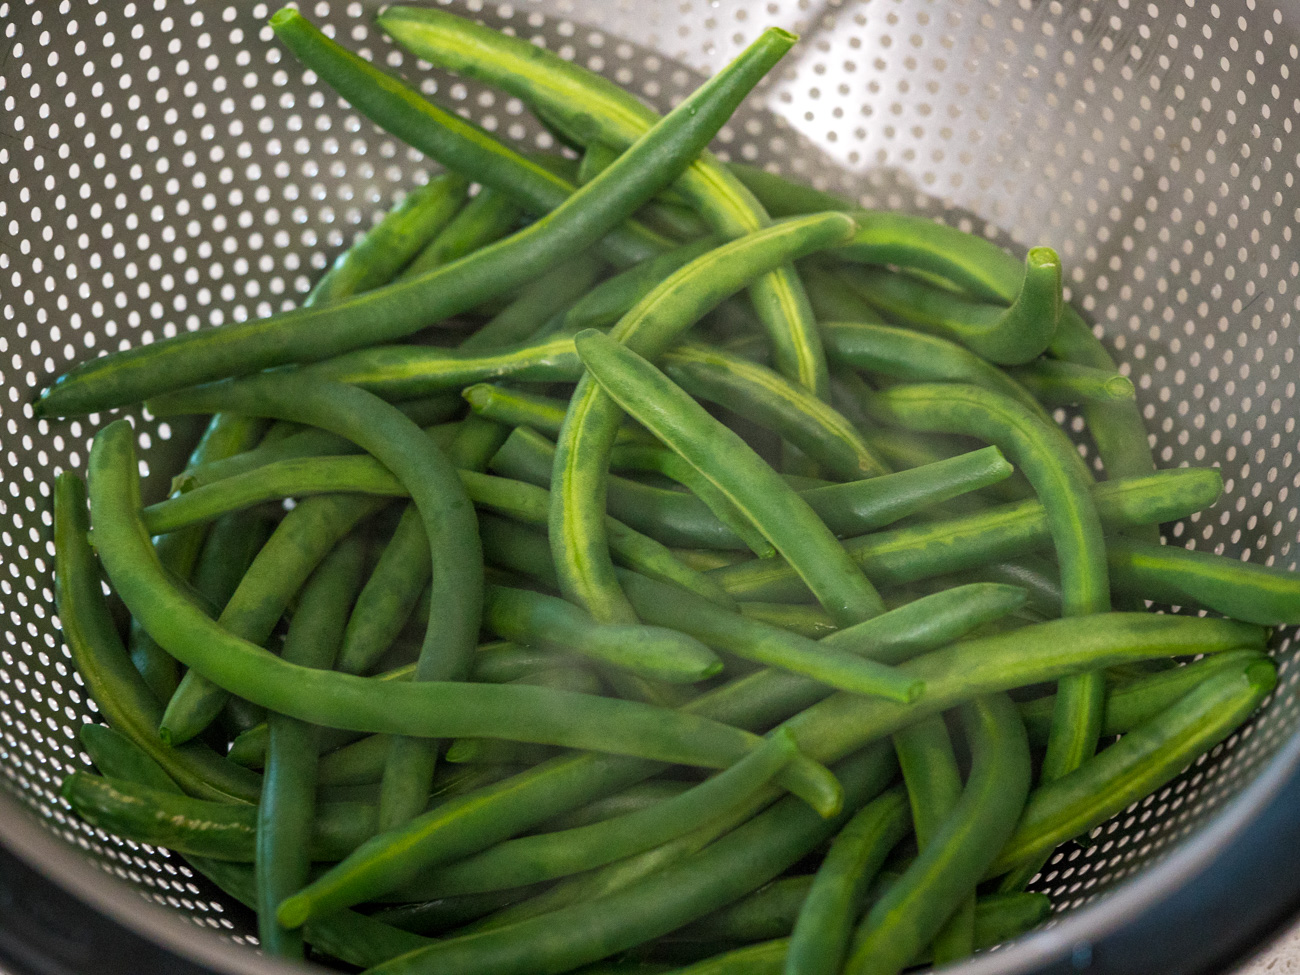 Fill a large pan with 1 inch of water and bring to a boil. Add green beans and blanch for 3 minutes. While the green beans cook, fill a large bowl with ice water and set aside.